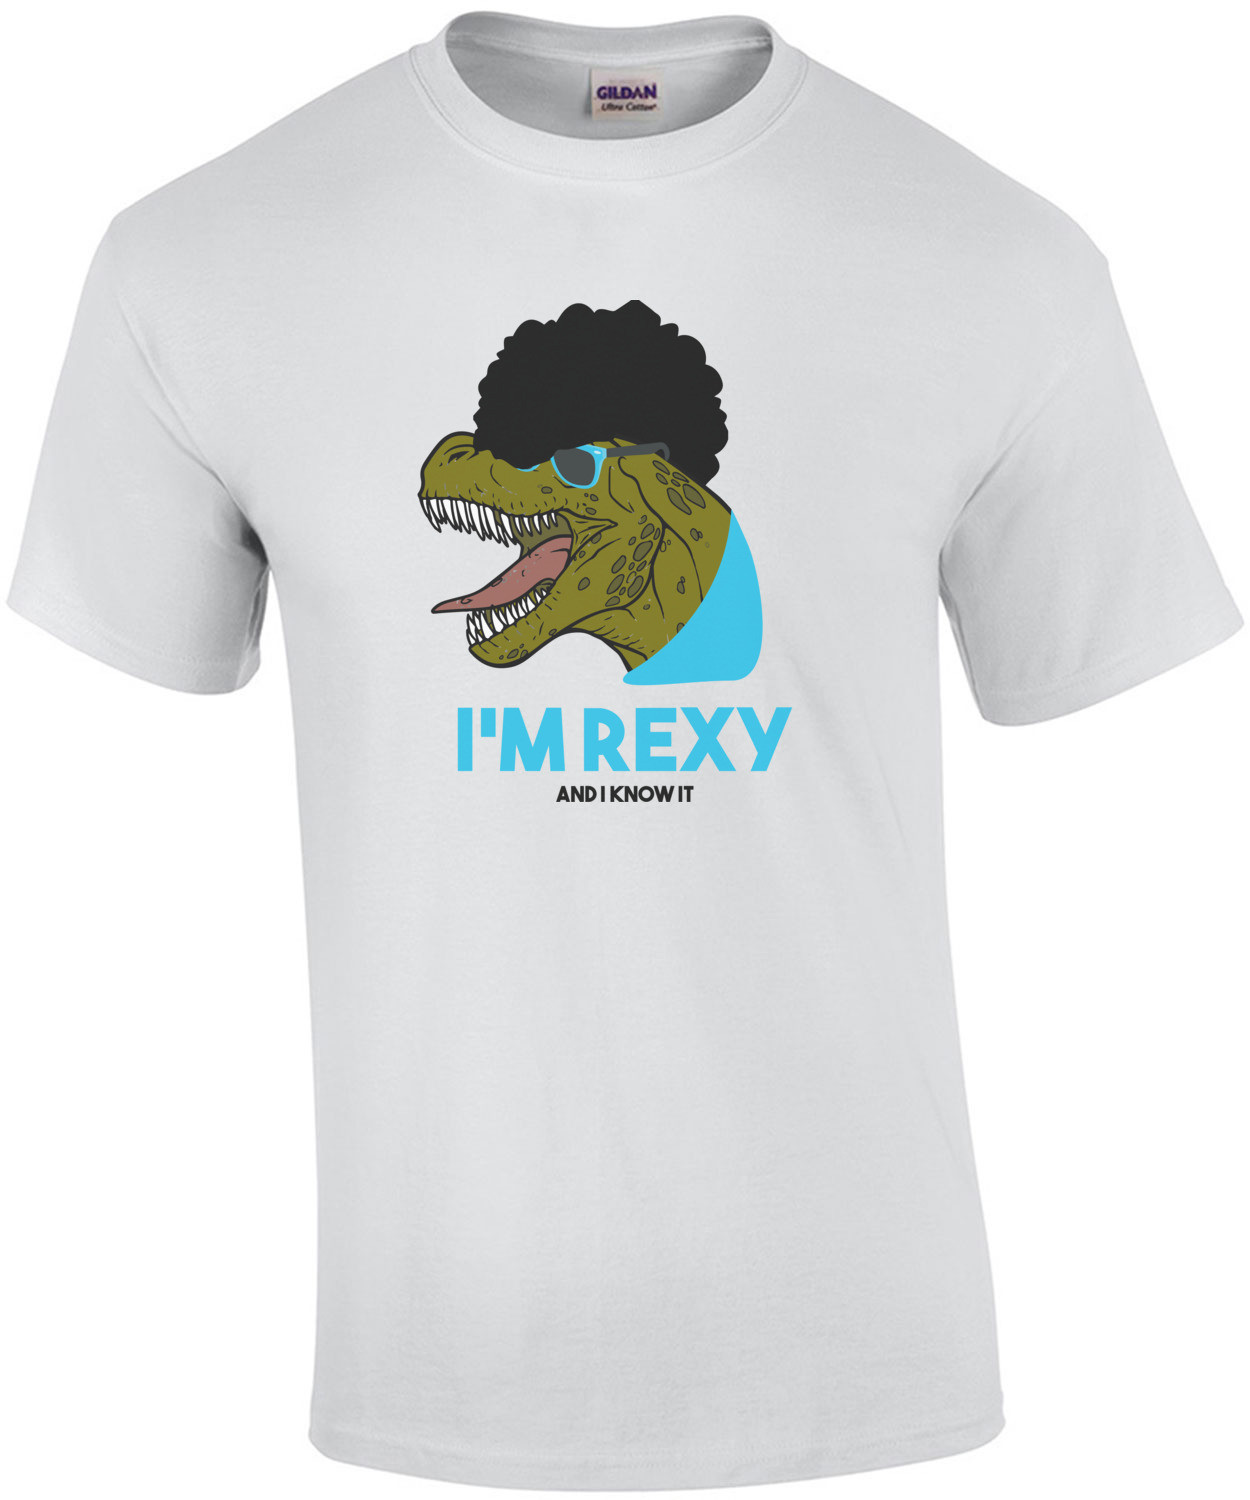 I'm rexy and I know it - T-Rex T-Shirt